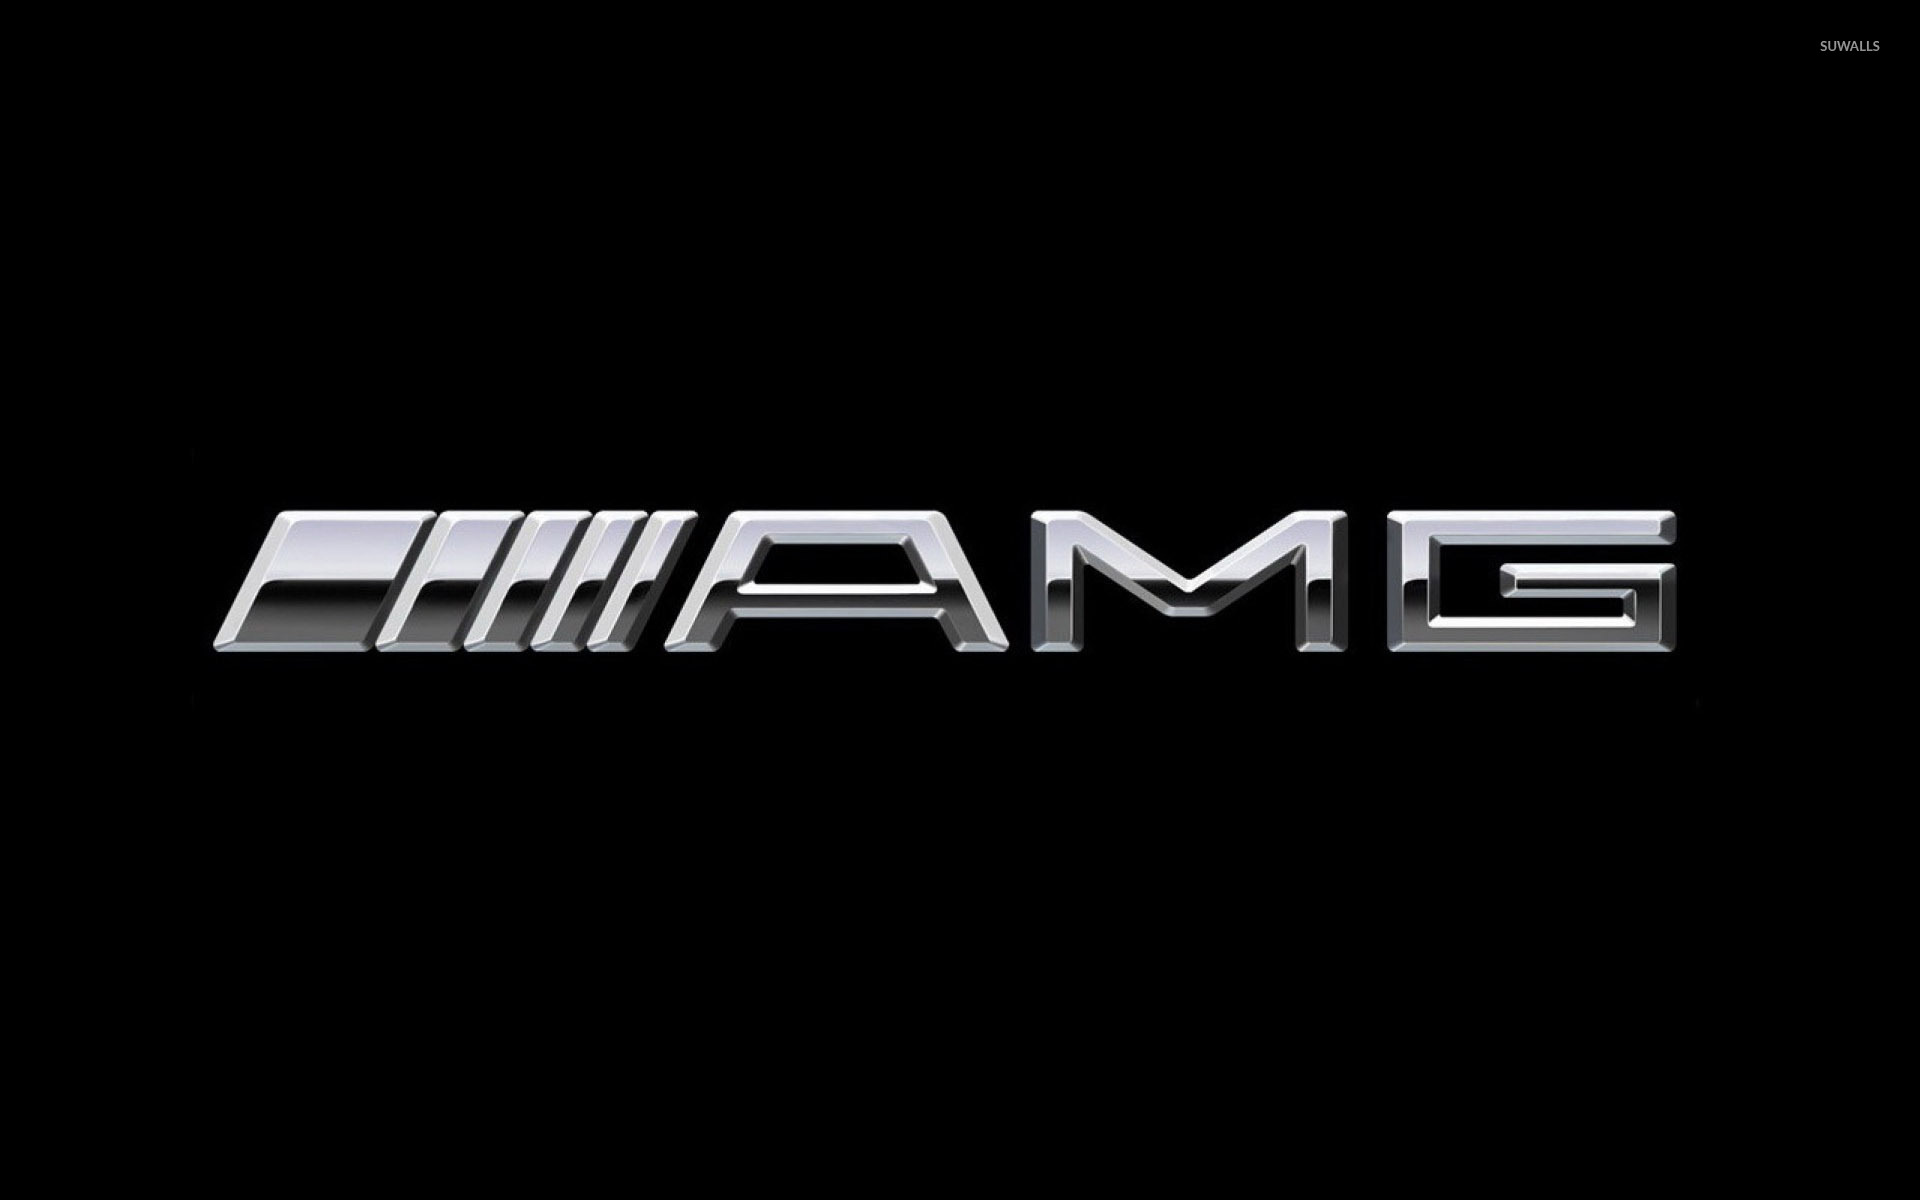 Mercedes benz amg logo wallpaper car wallpapers 26412 mercedes benz amg logo wallpaper voltagebd